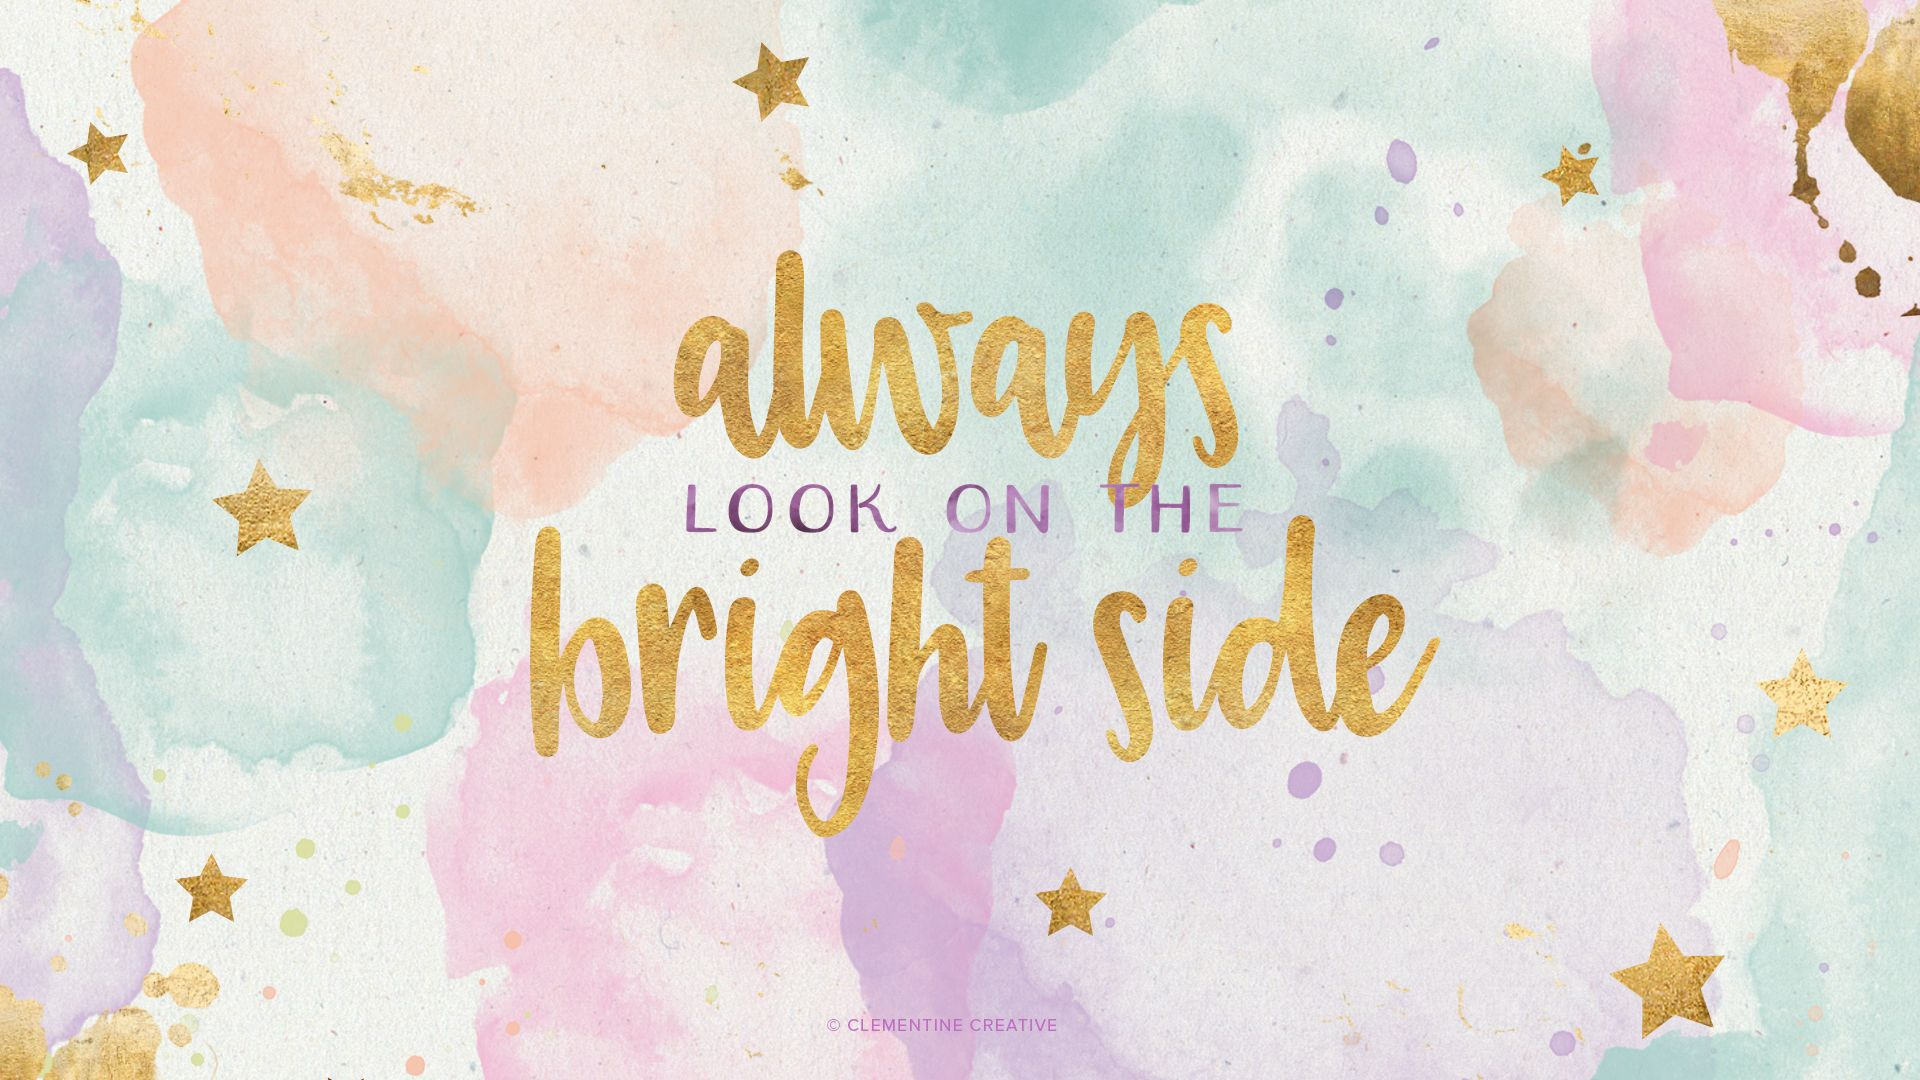 free wallpaper: always look on the bright side | tech | pinterest